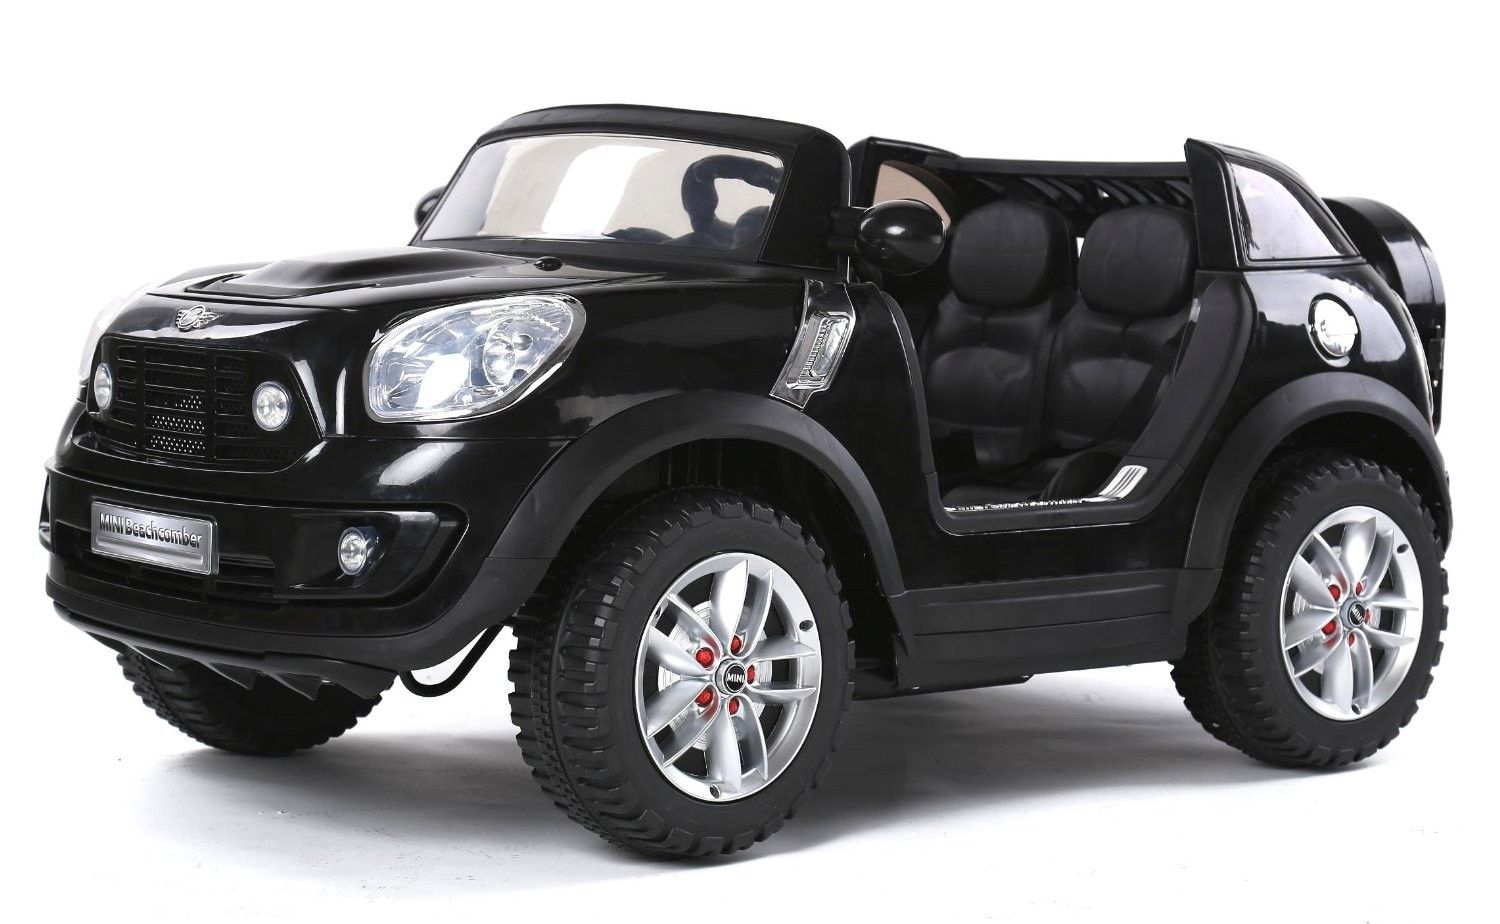 Magic CarsR 2 Seater Electric Mini Cooper Ride On Remote Control RC Car For Kids W Leather Seats